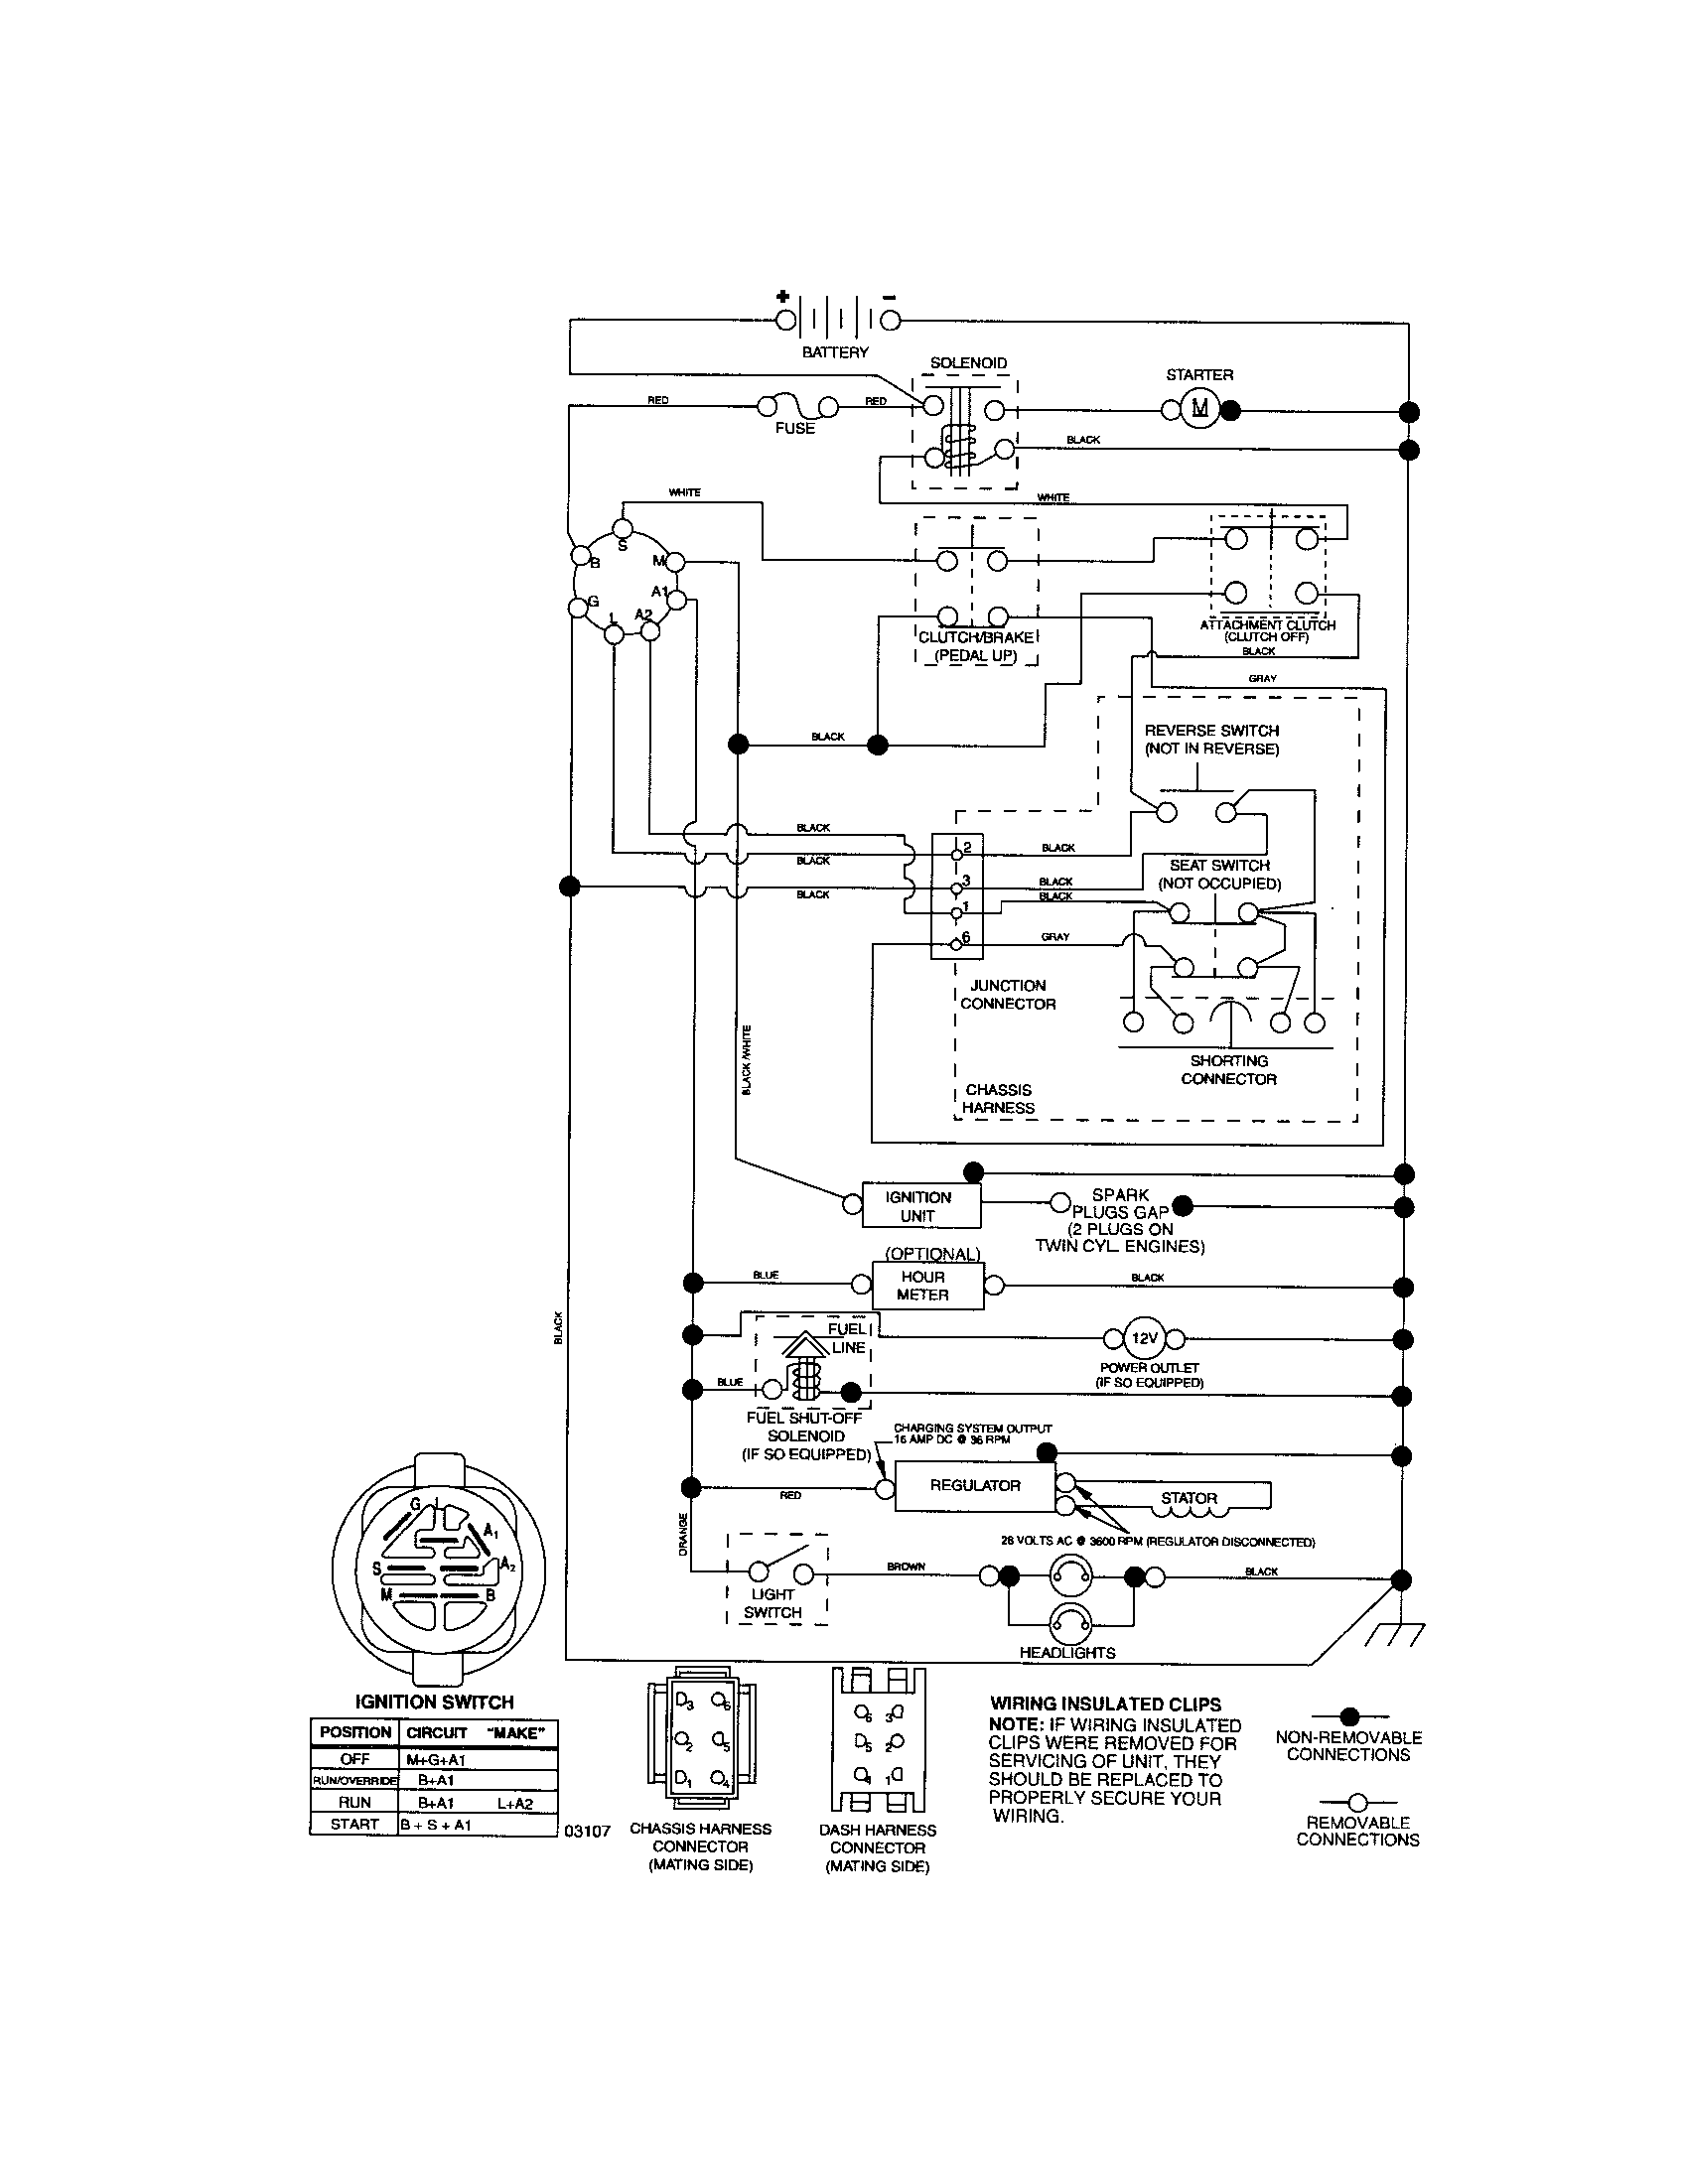 6af5f1447fd13c8443376822ddc1e105 craftsman riding mower electrical diagram wiring diagram craftsman lawn tractor wiring schematic at edmiracle.co